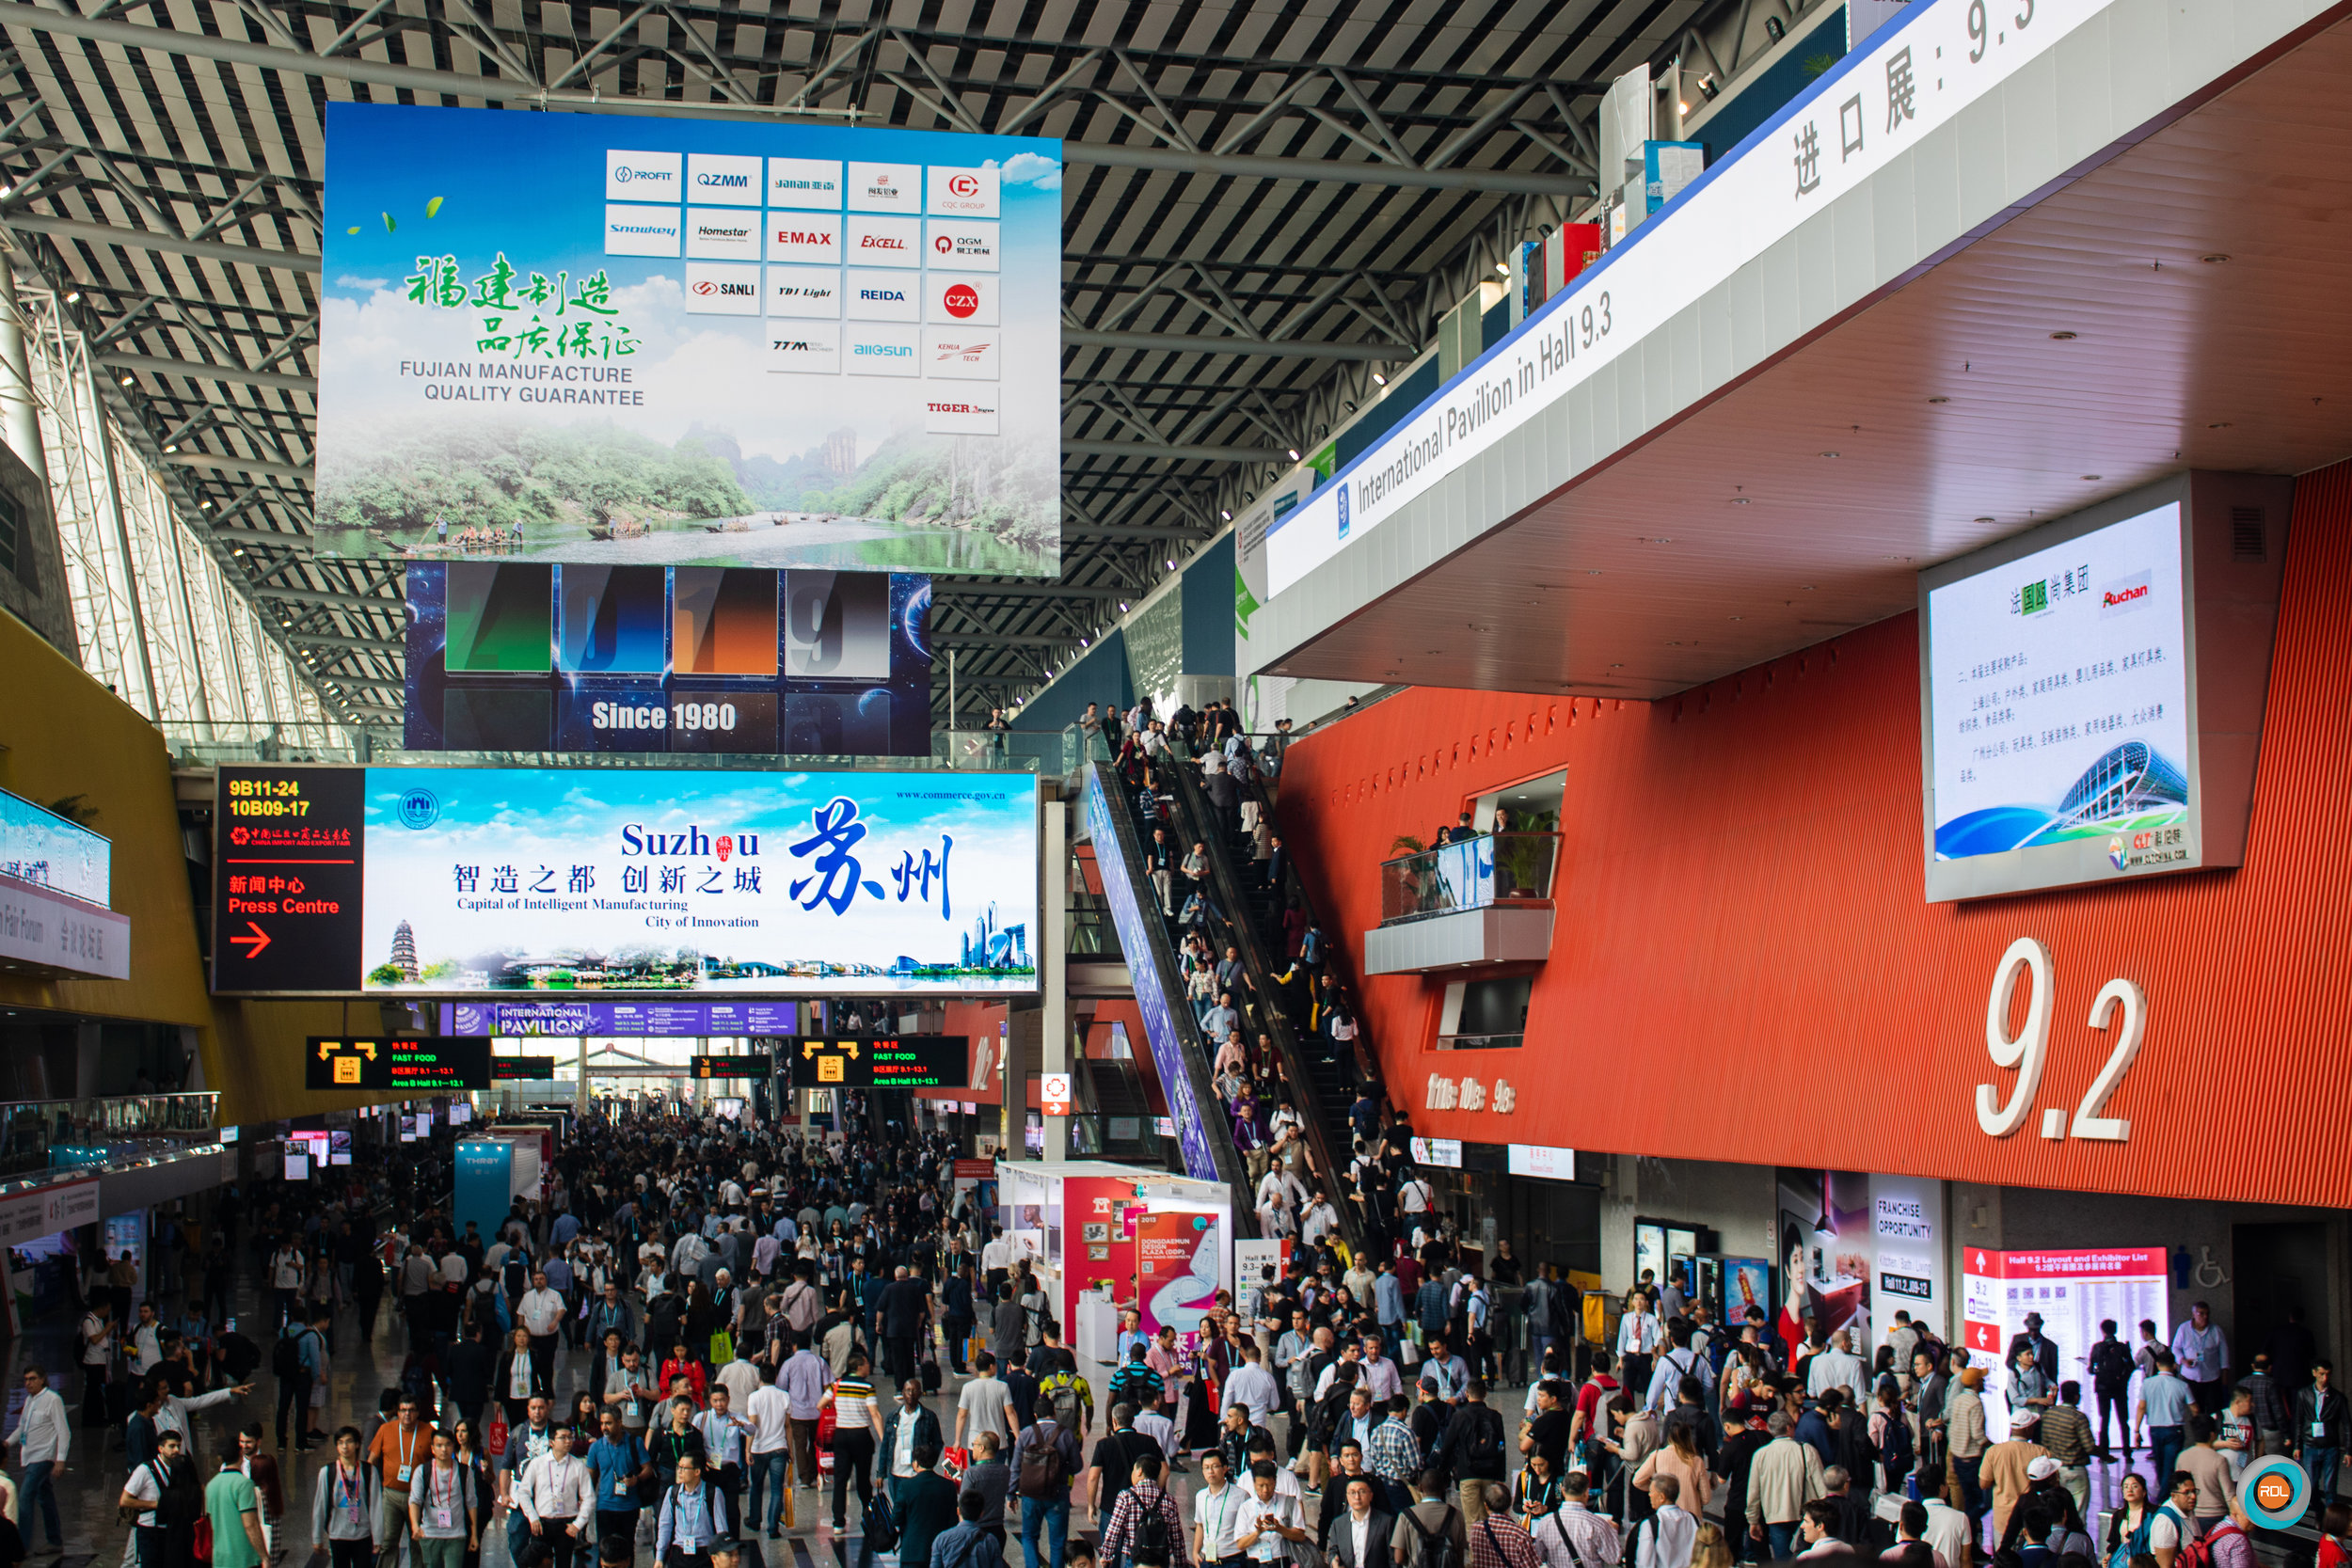 A glimpse of the bustling nature of the Canton Fair. The event attracts over 800,000 buyers from across the globe.